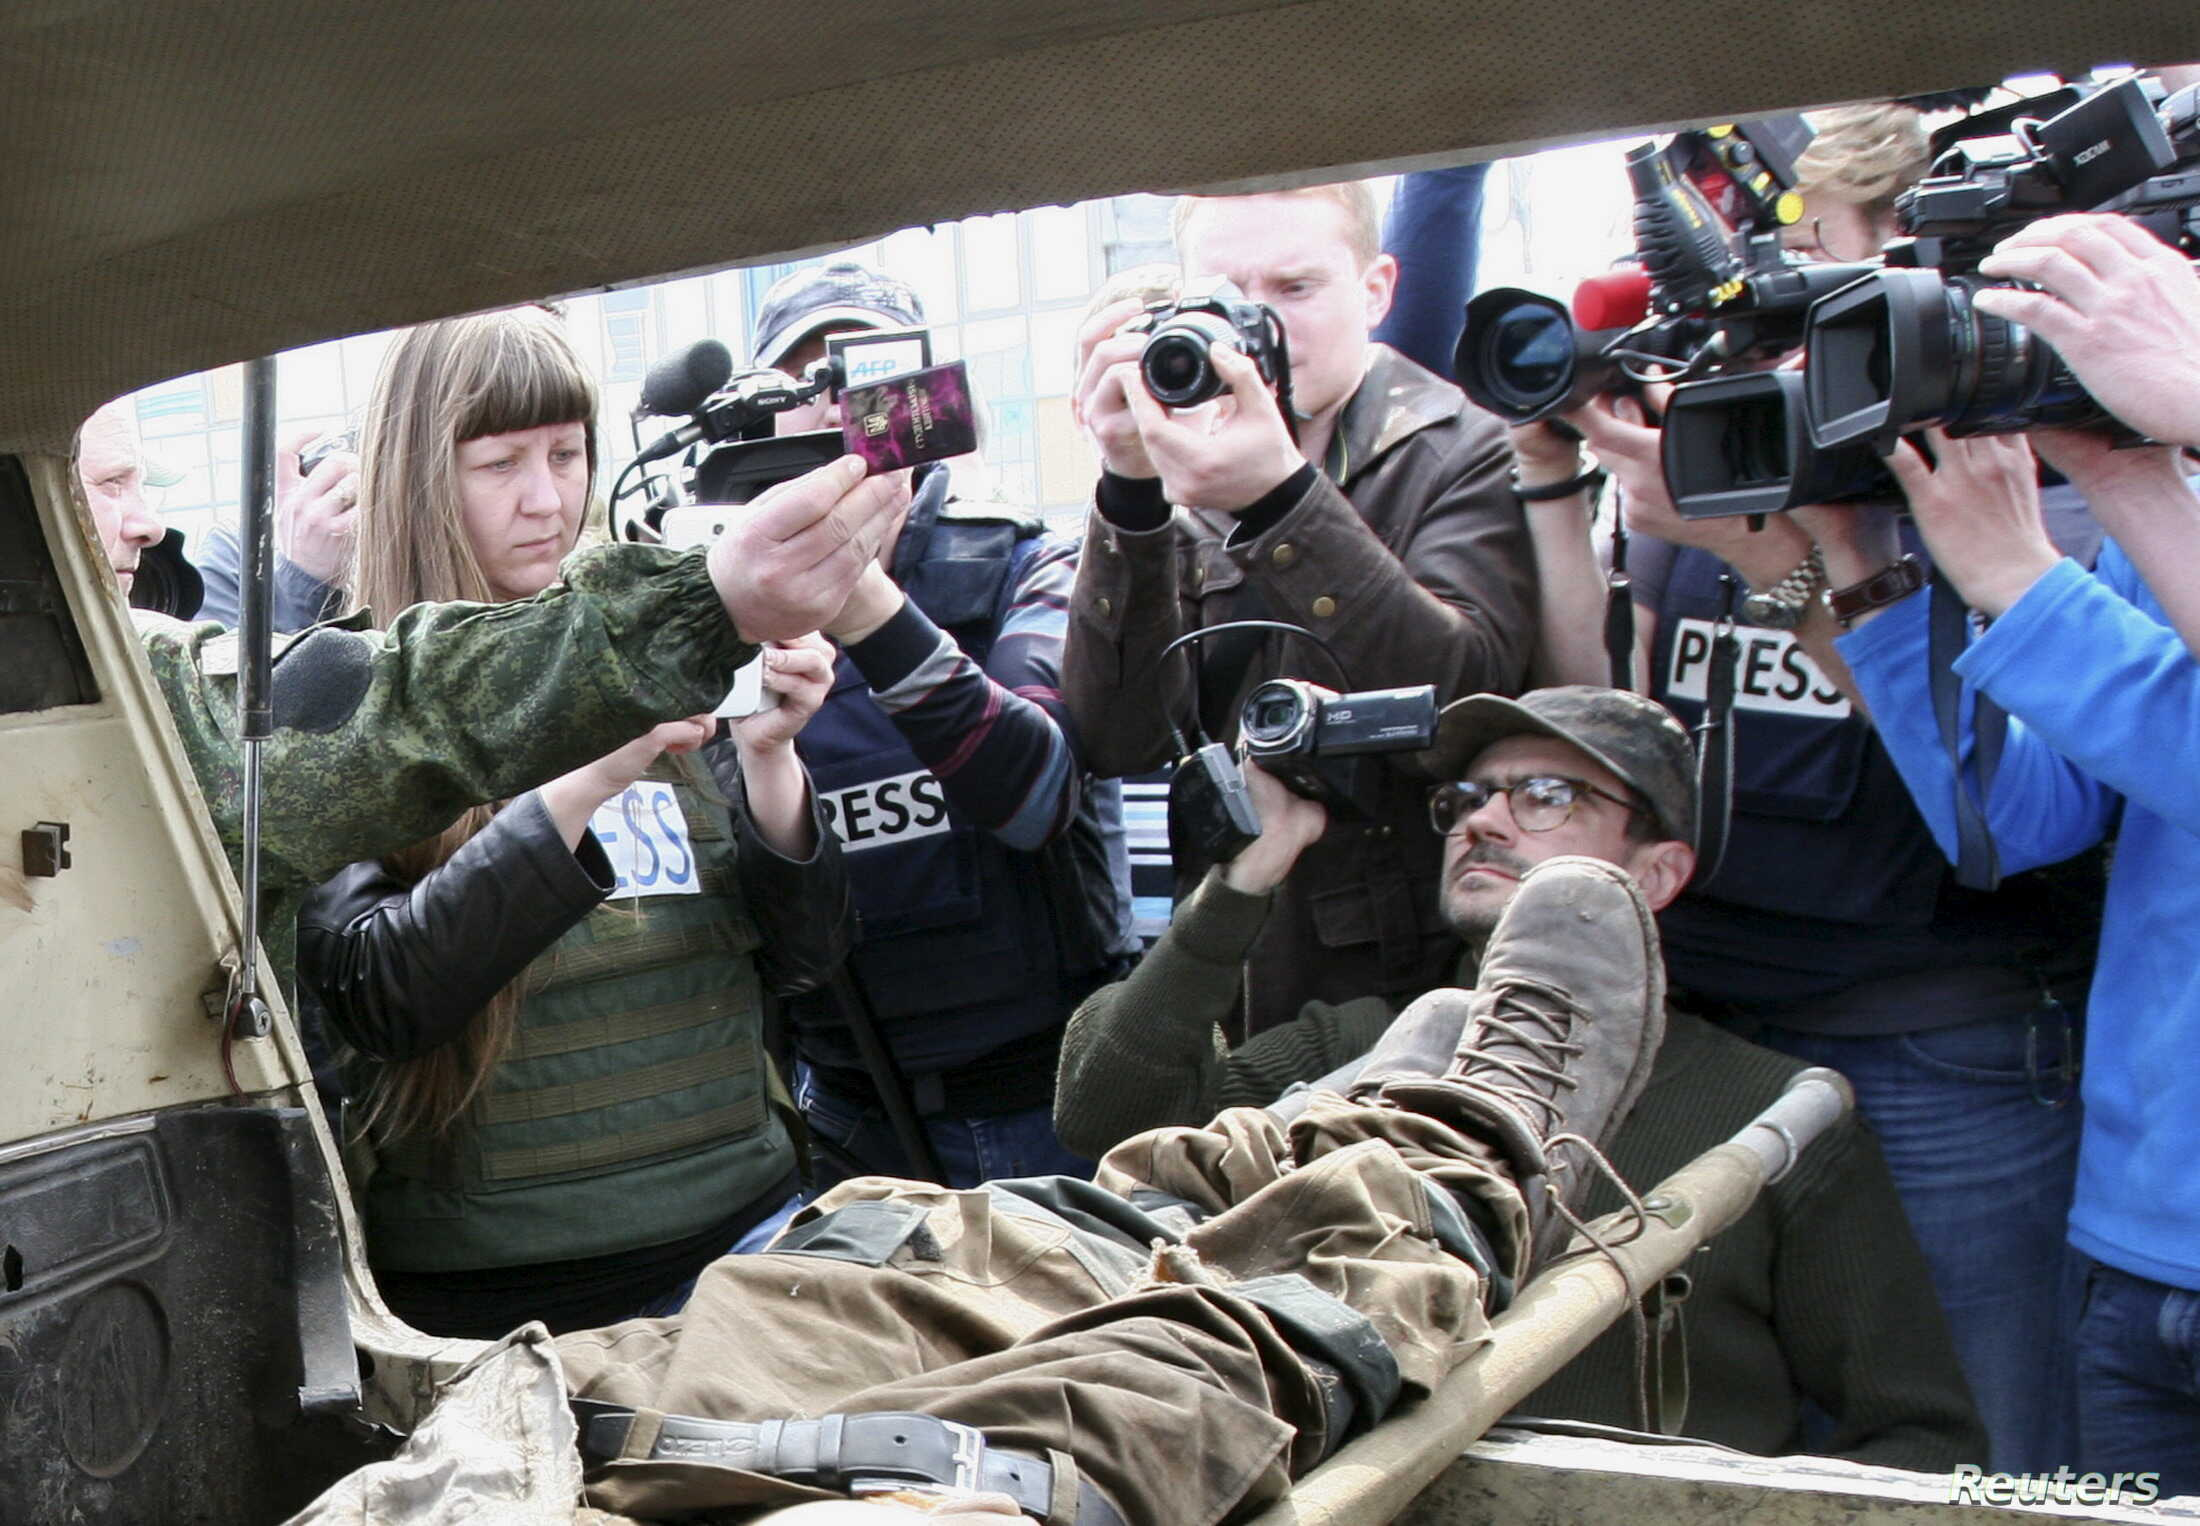 Journalists take photos and video of the body of a man, a Ukrainian serviceman according to separatist self-proclaimed Donetsk People's Republic (DNR) officials, in Donetsk, April 13, 2015.